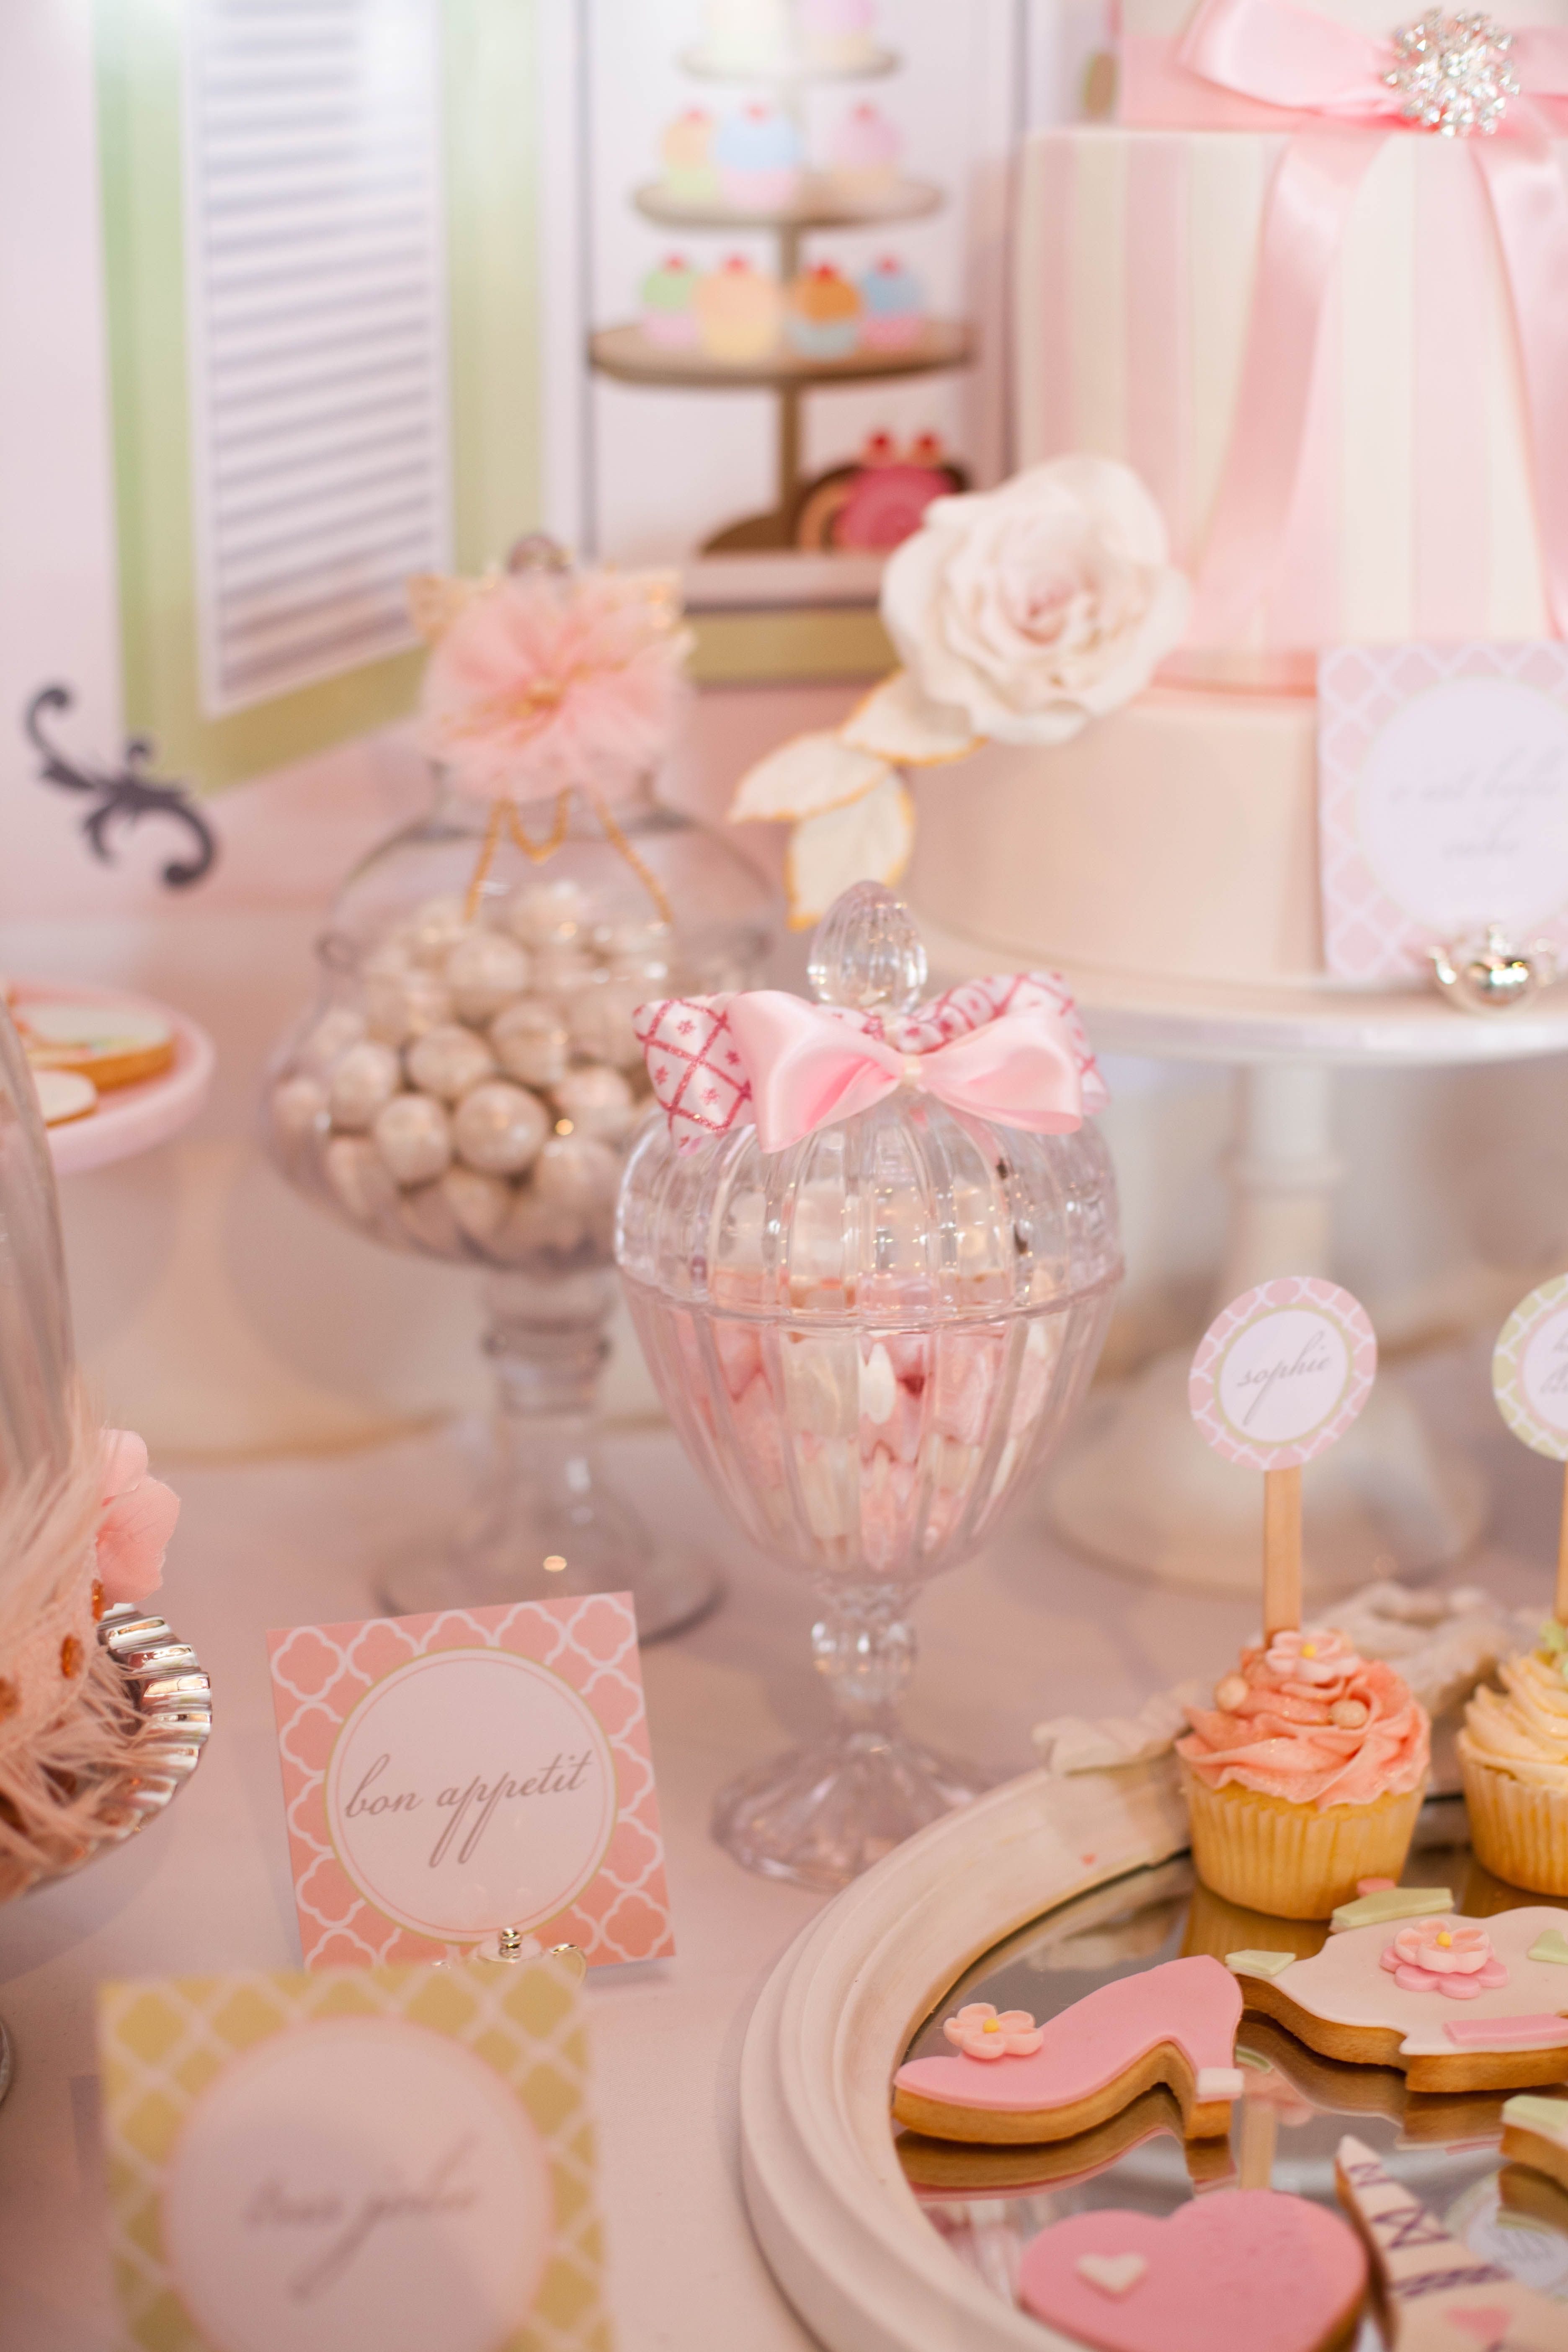 Vintage French patisserie party by Little Big Company | Fiestas ...